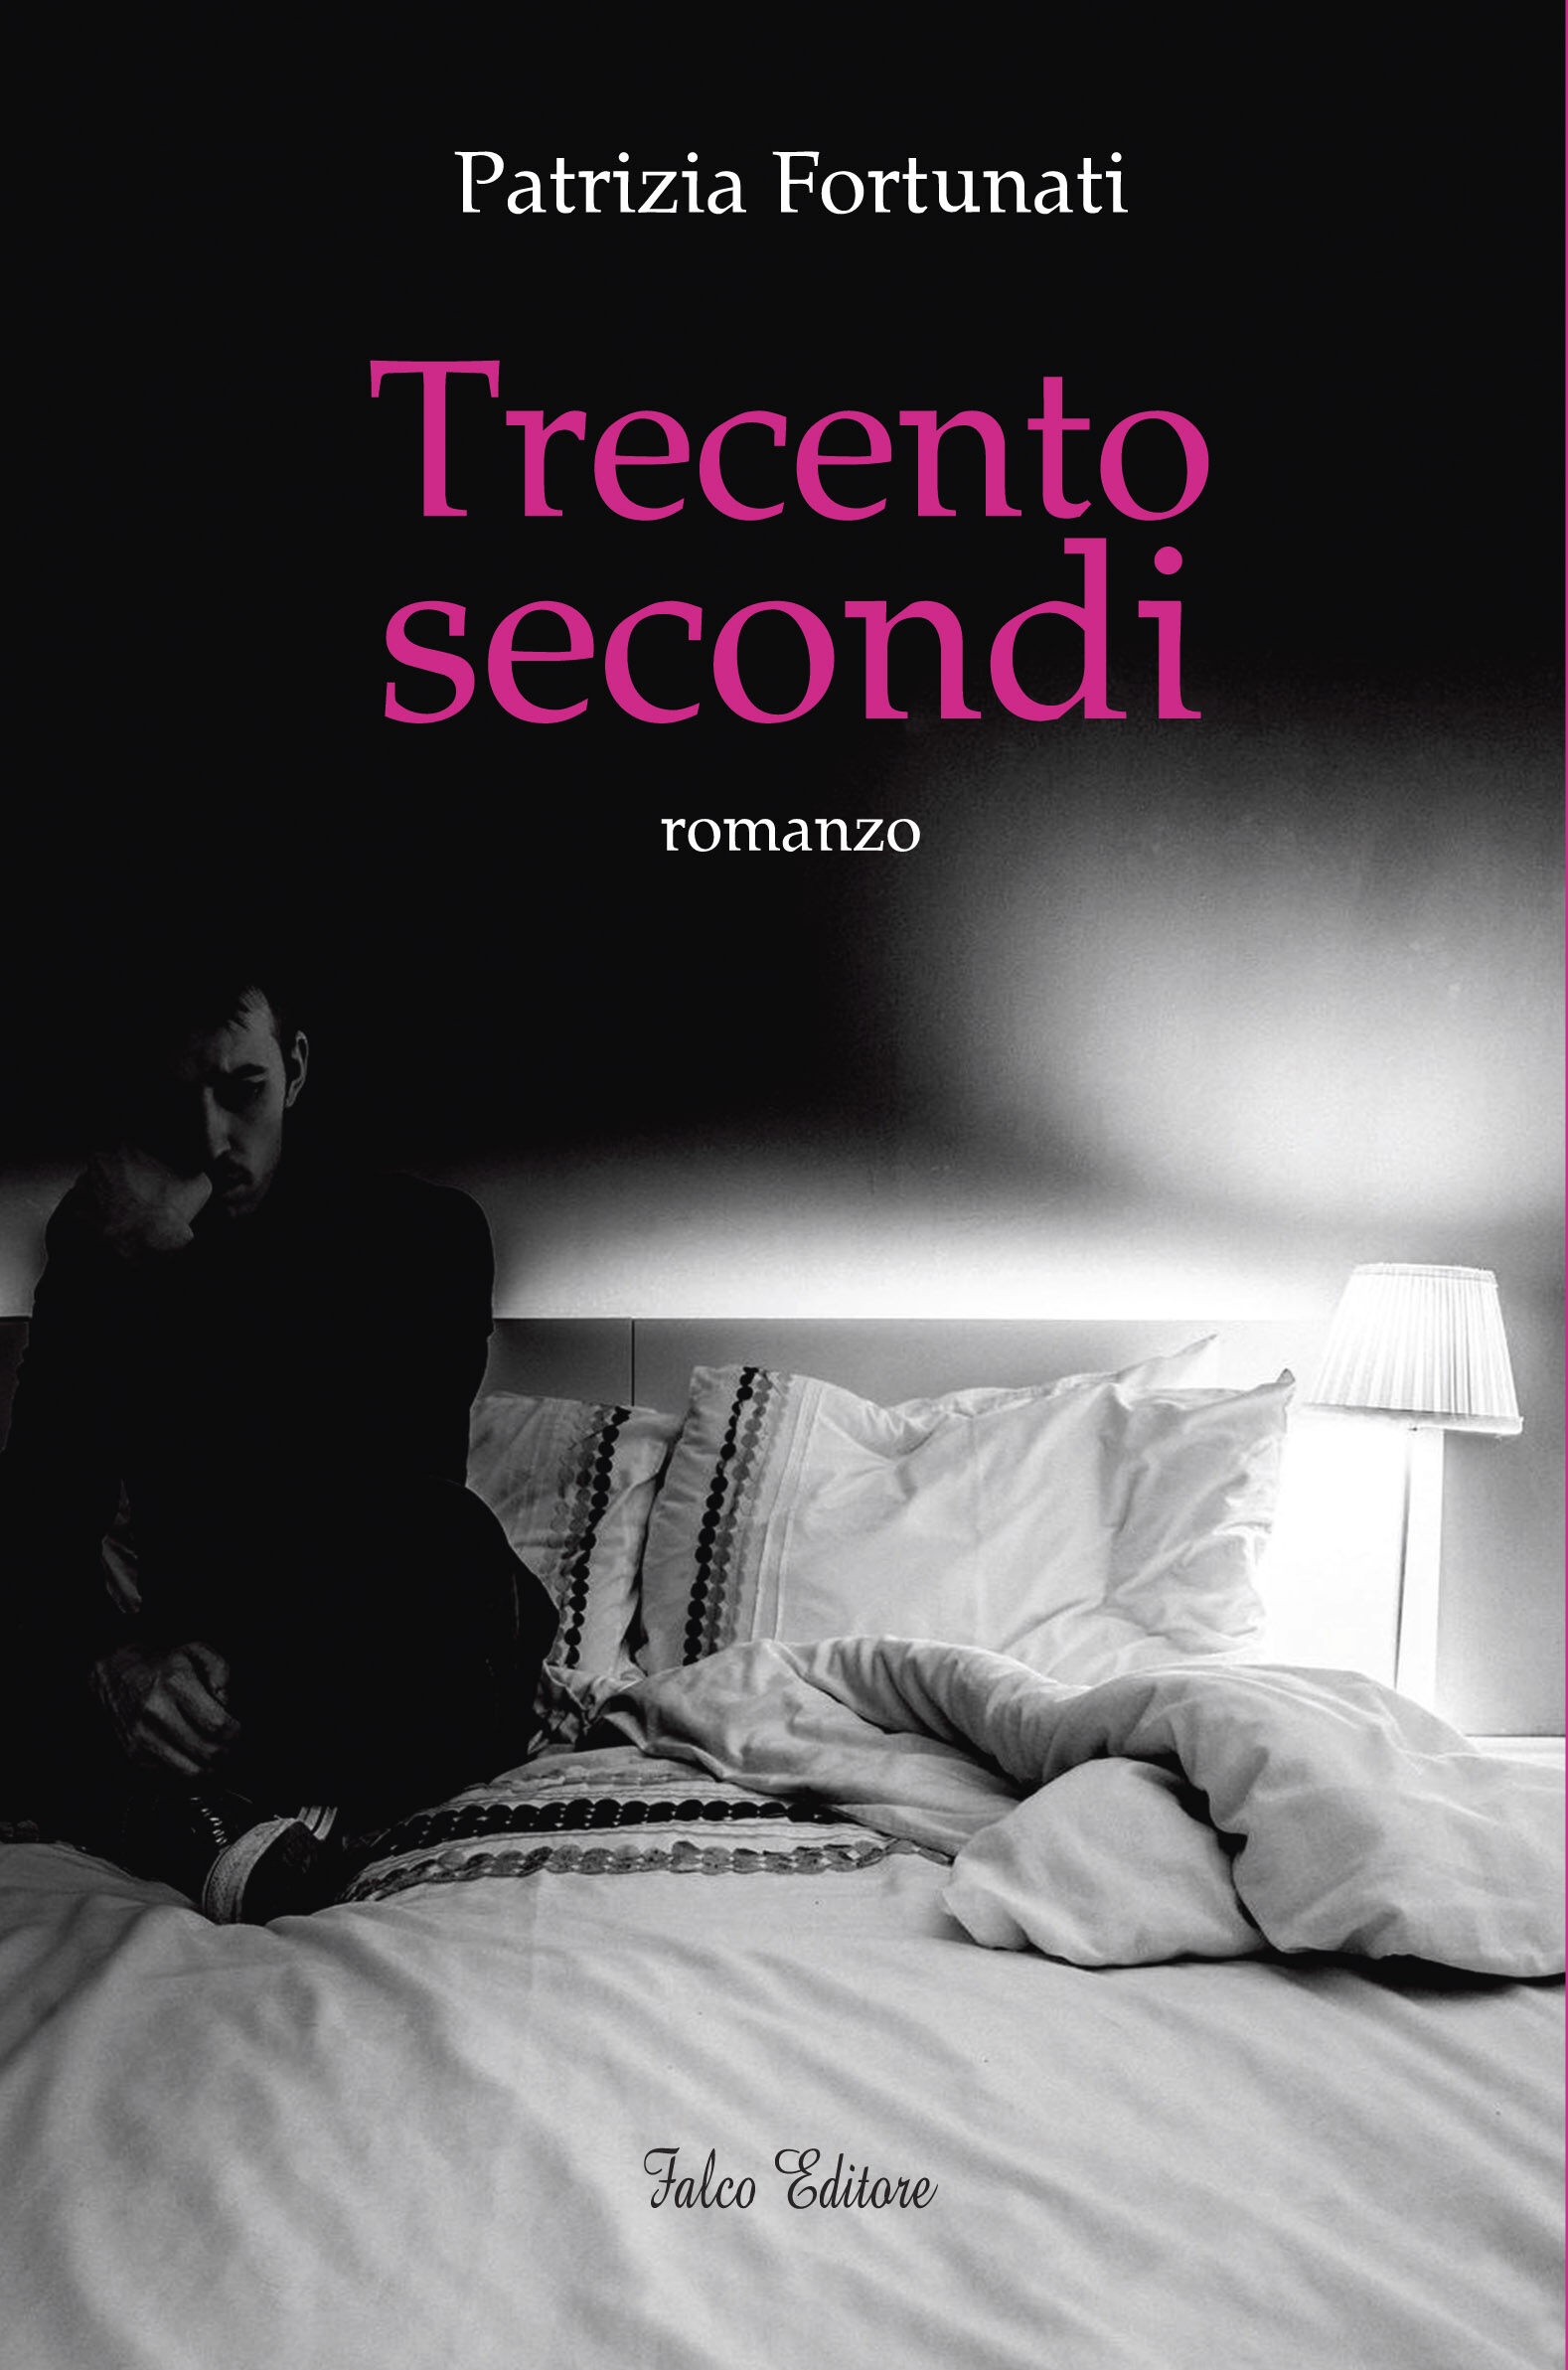 Trecento secondi